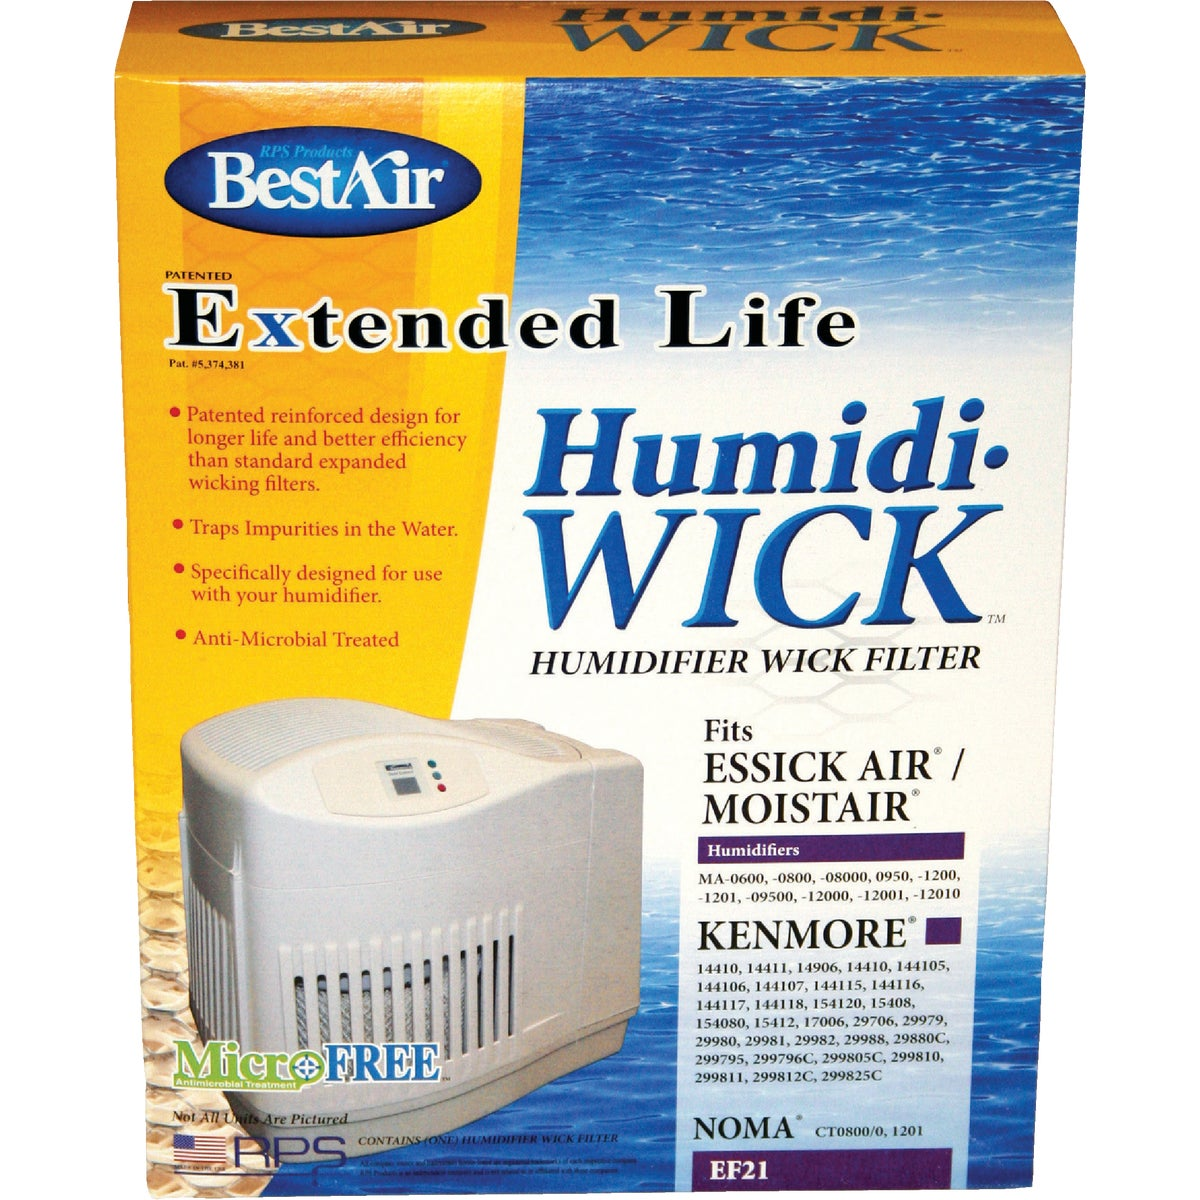 HUMIDIFIER WICK FILTER - EF1 by Rps Products Inc